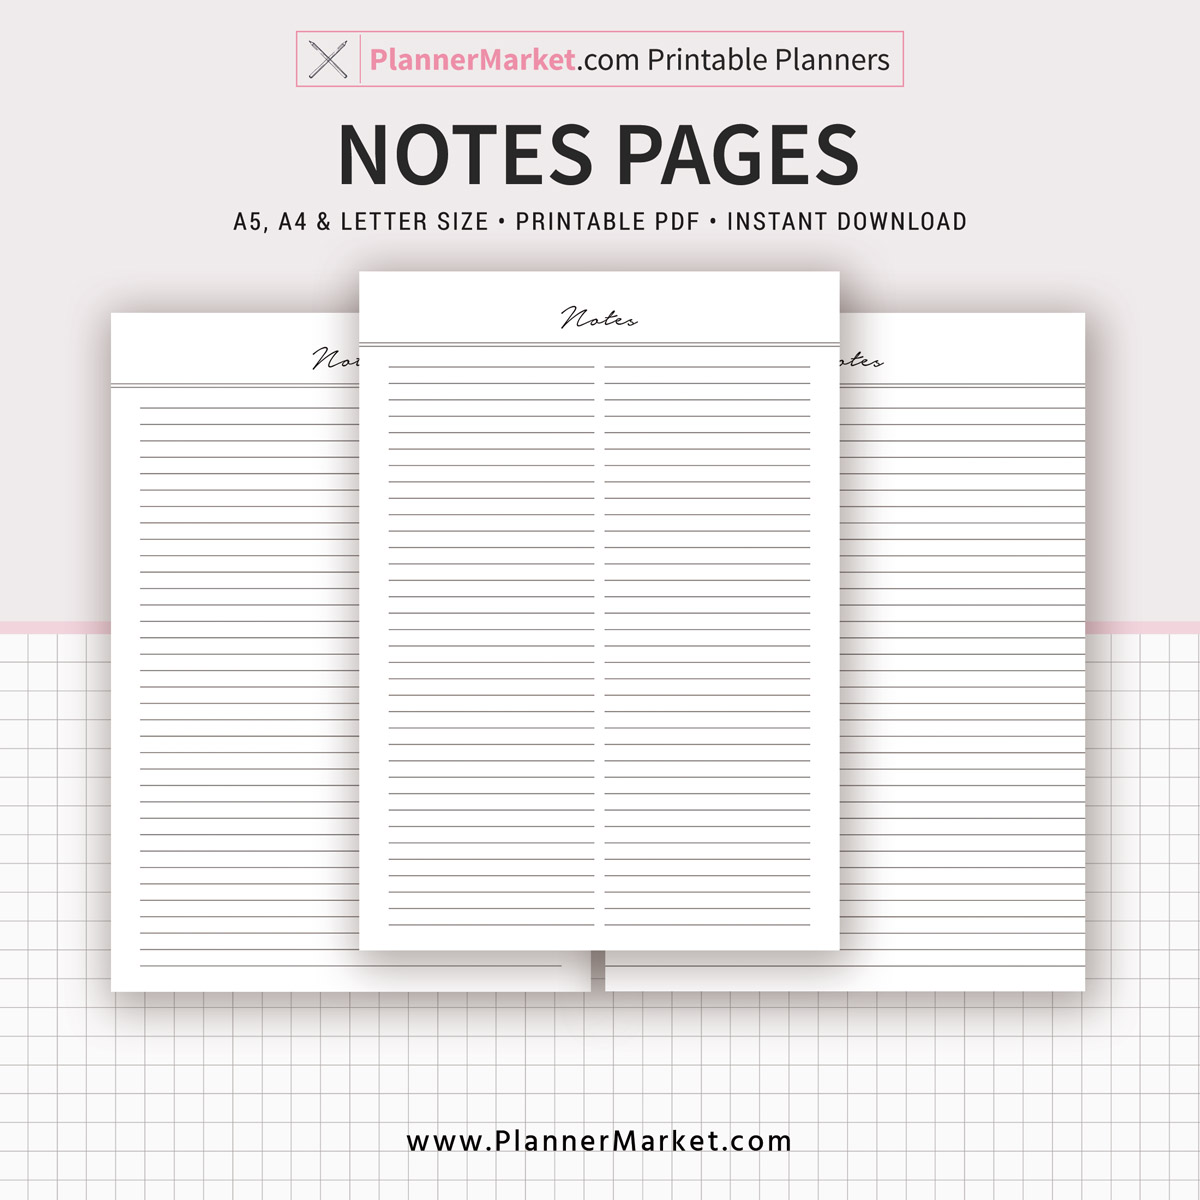 picture regarding Notes Printable named Notes Web site, 2019 Planner, A5, A4, Letter Dimensions, Planner Refill, Planner Binder, Printable Planner, Fast Down load